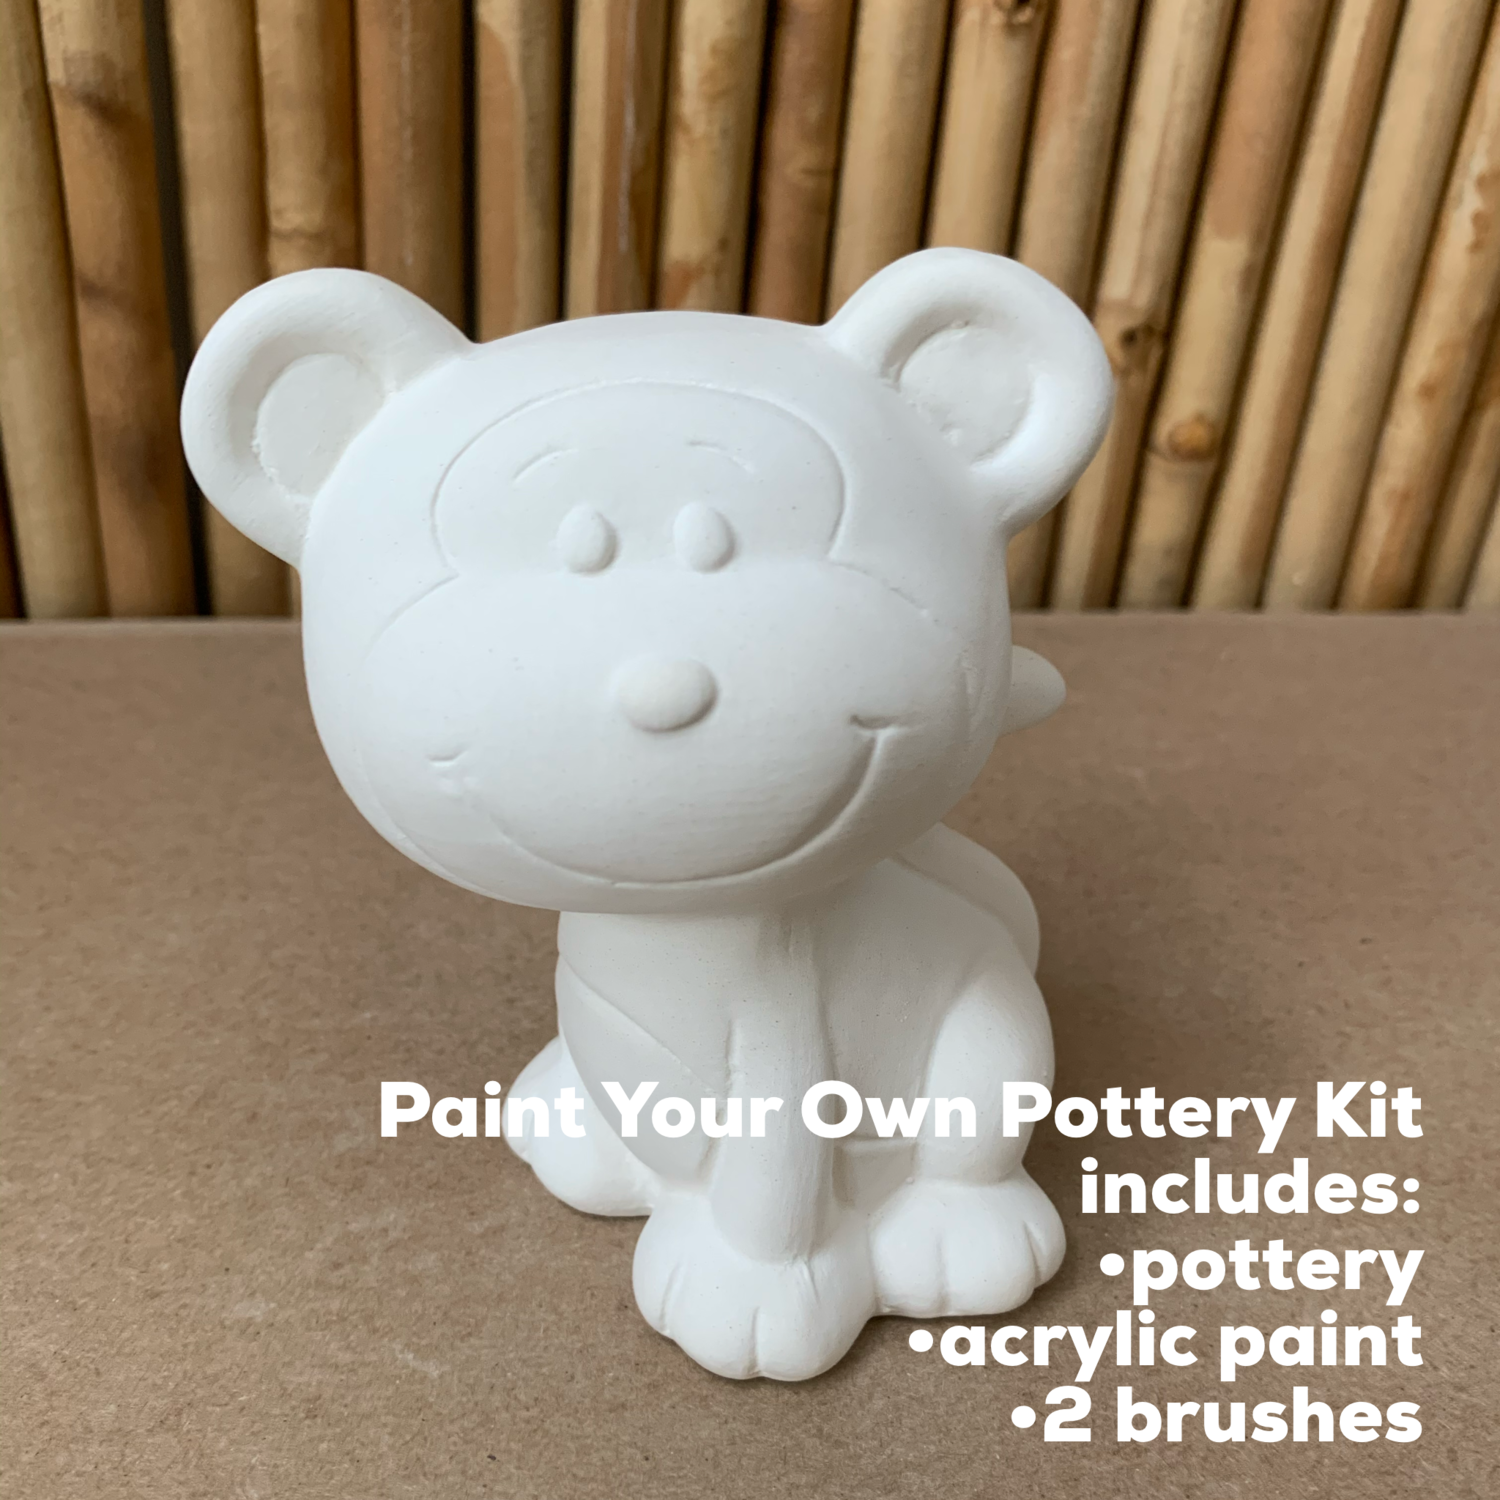 NO FIRE Paint Your Own Pottery Kit -  Ceramic Monkey Figurine Acrylic Painting Kit